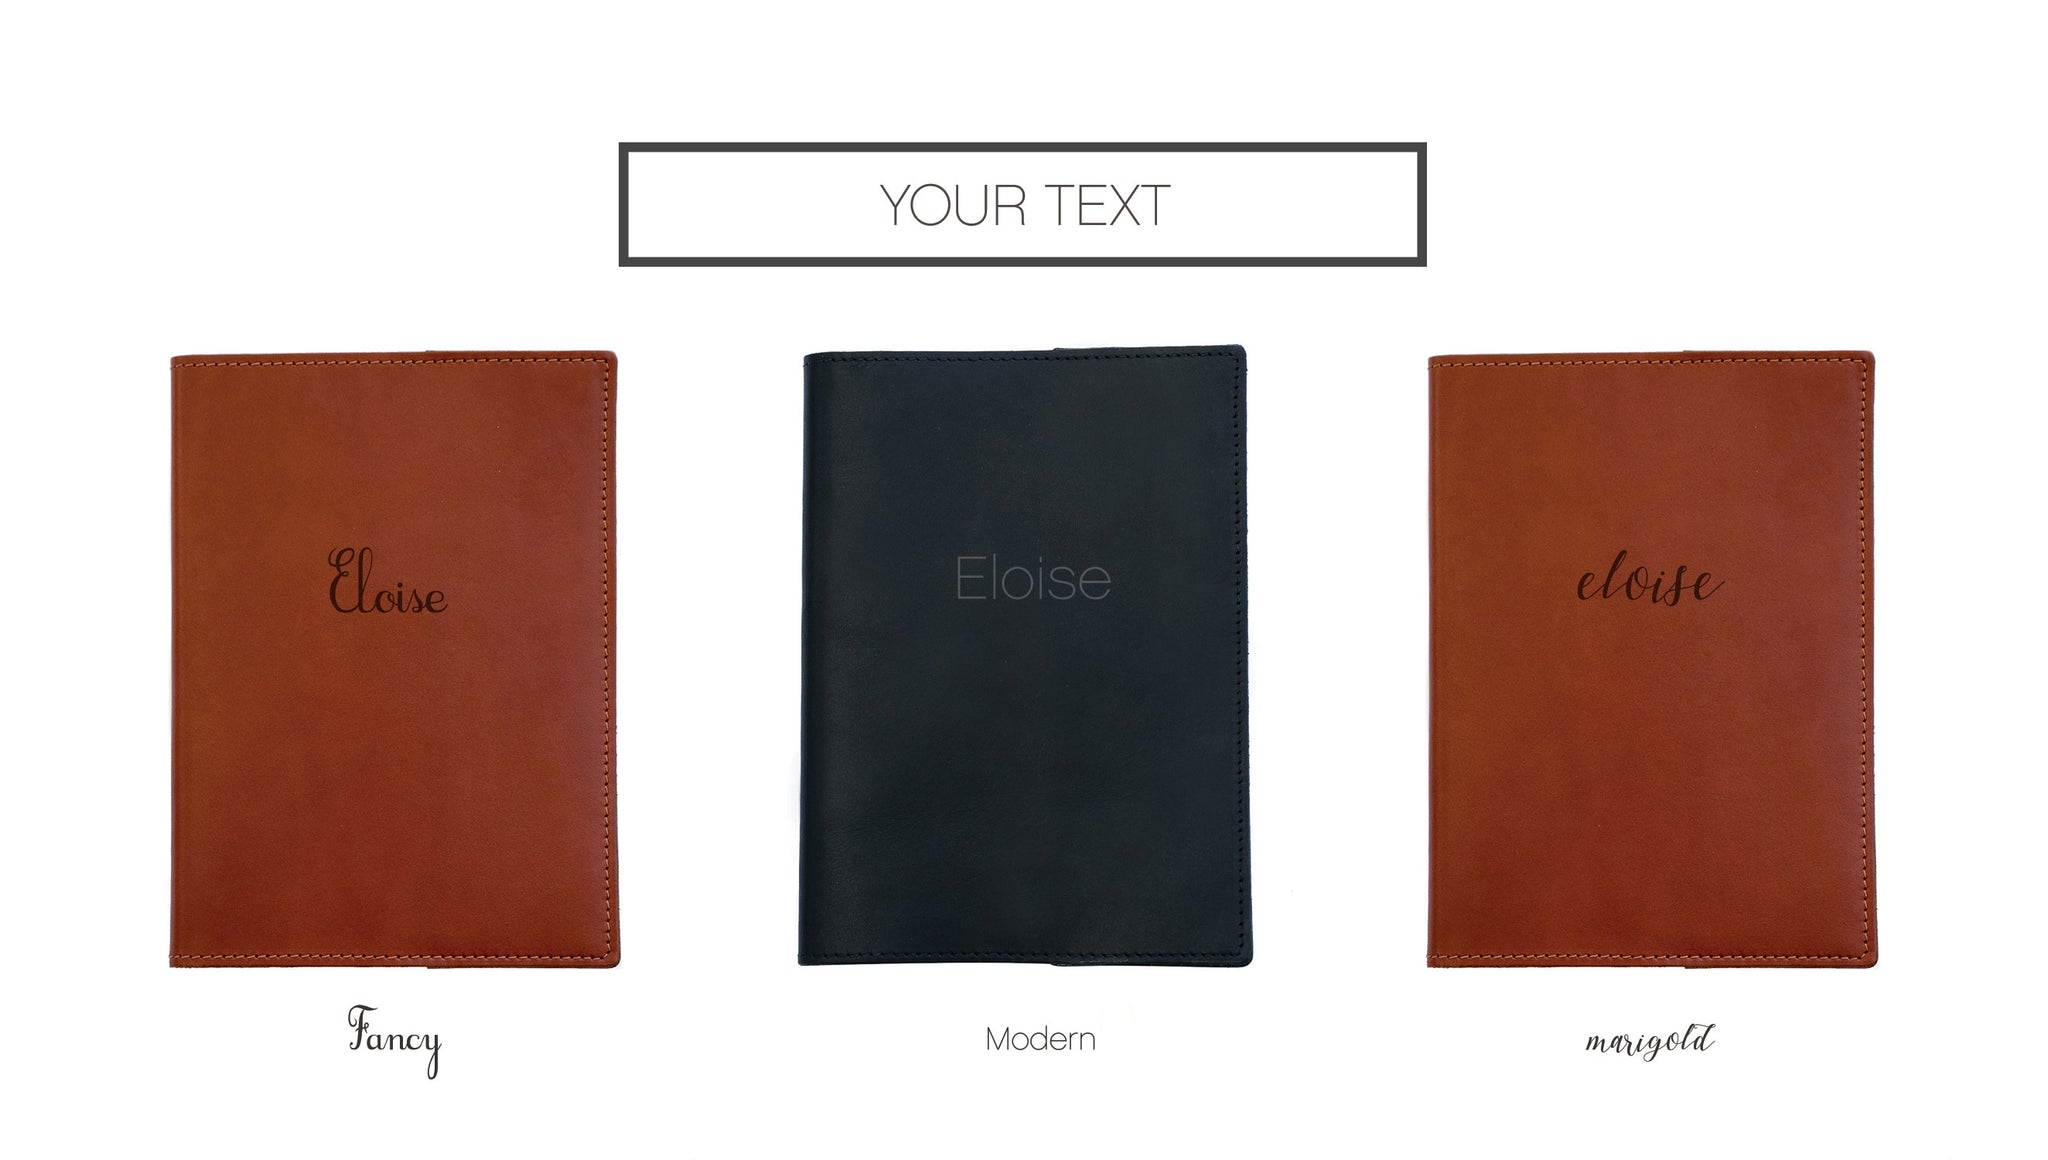 FOTO's genuine leather journal can be personalized with text. Your text must be entered in the exactly as you would like it to appear on the journal. Text is limited to 14 characters and is available on one line.